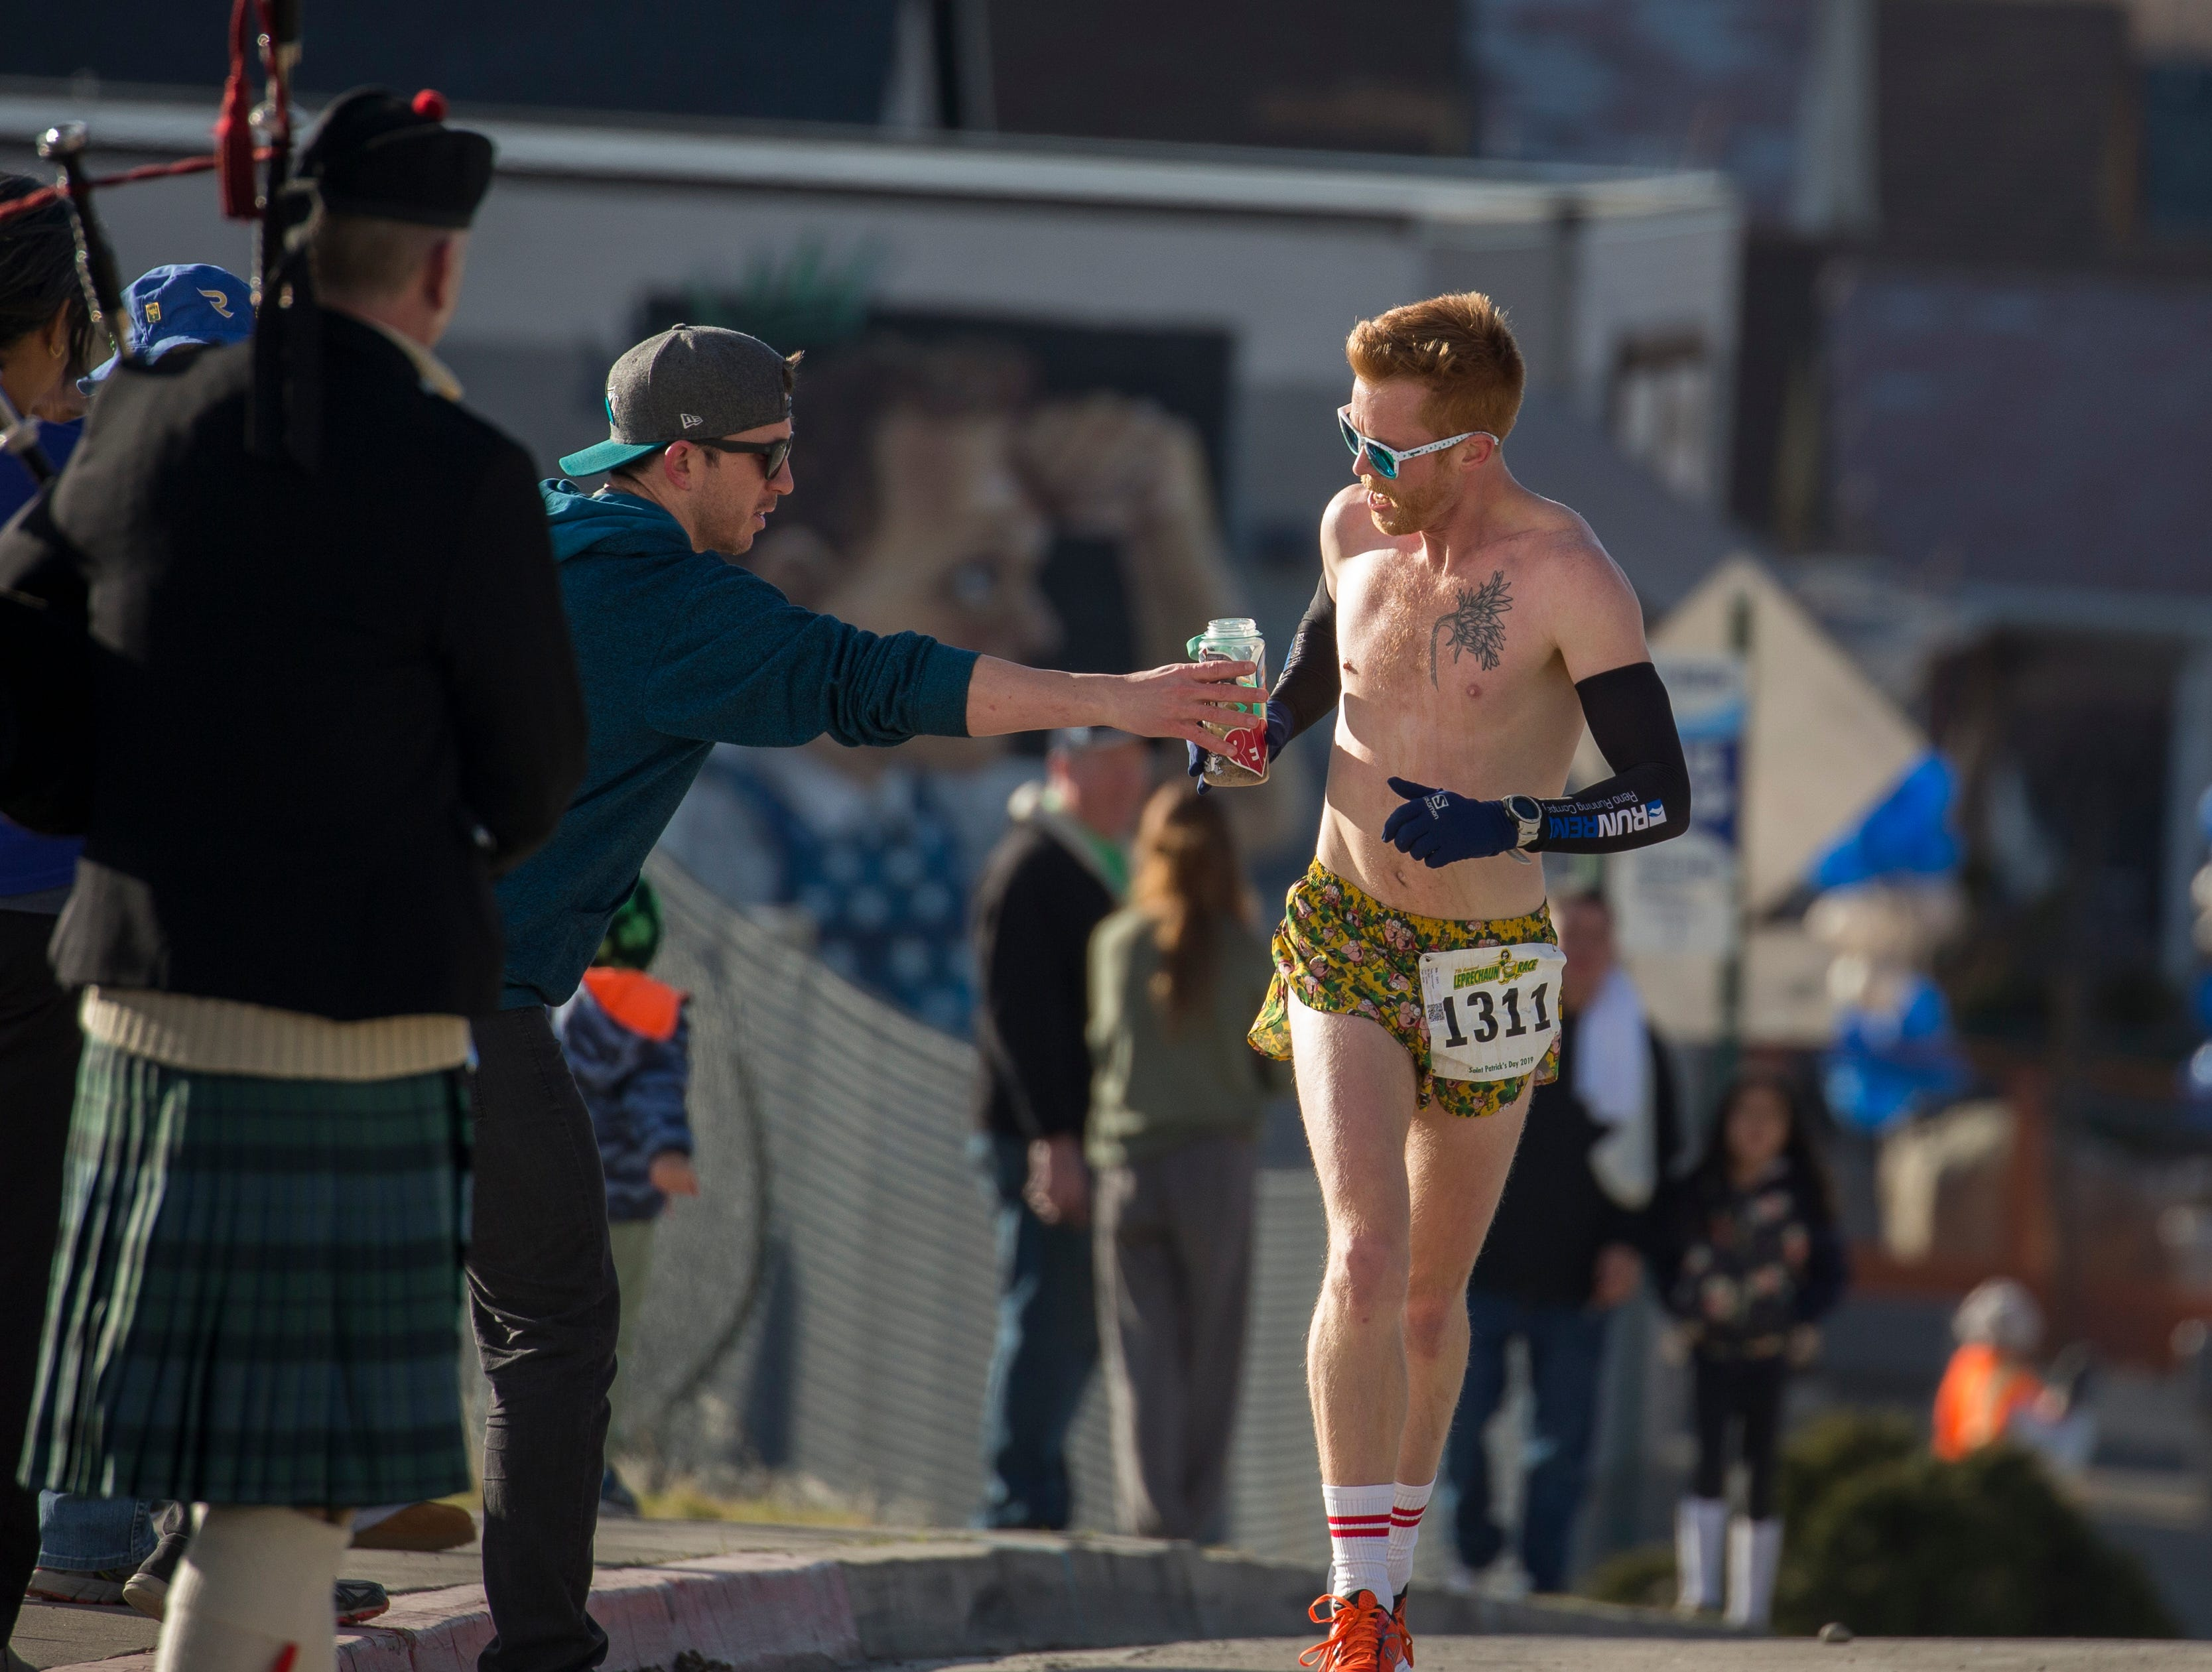 Race winner Salty McHooligan gets a drink as he approaches the finish line of the 7th annual Leprechaun Race in downtown Reno, Nevada on Sunday, March 17, 2019.